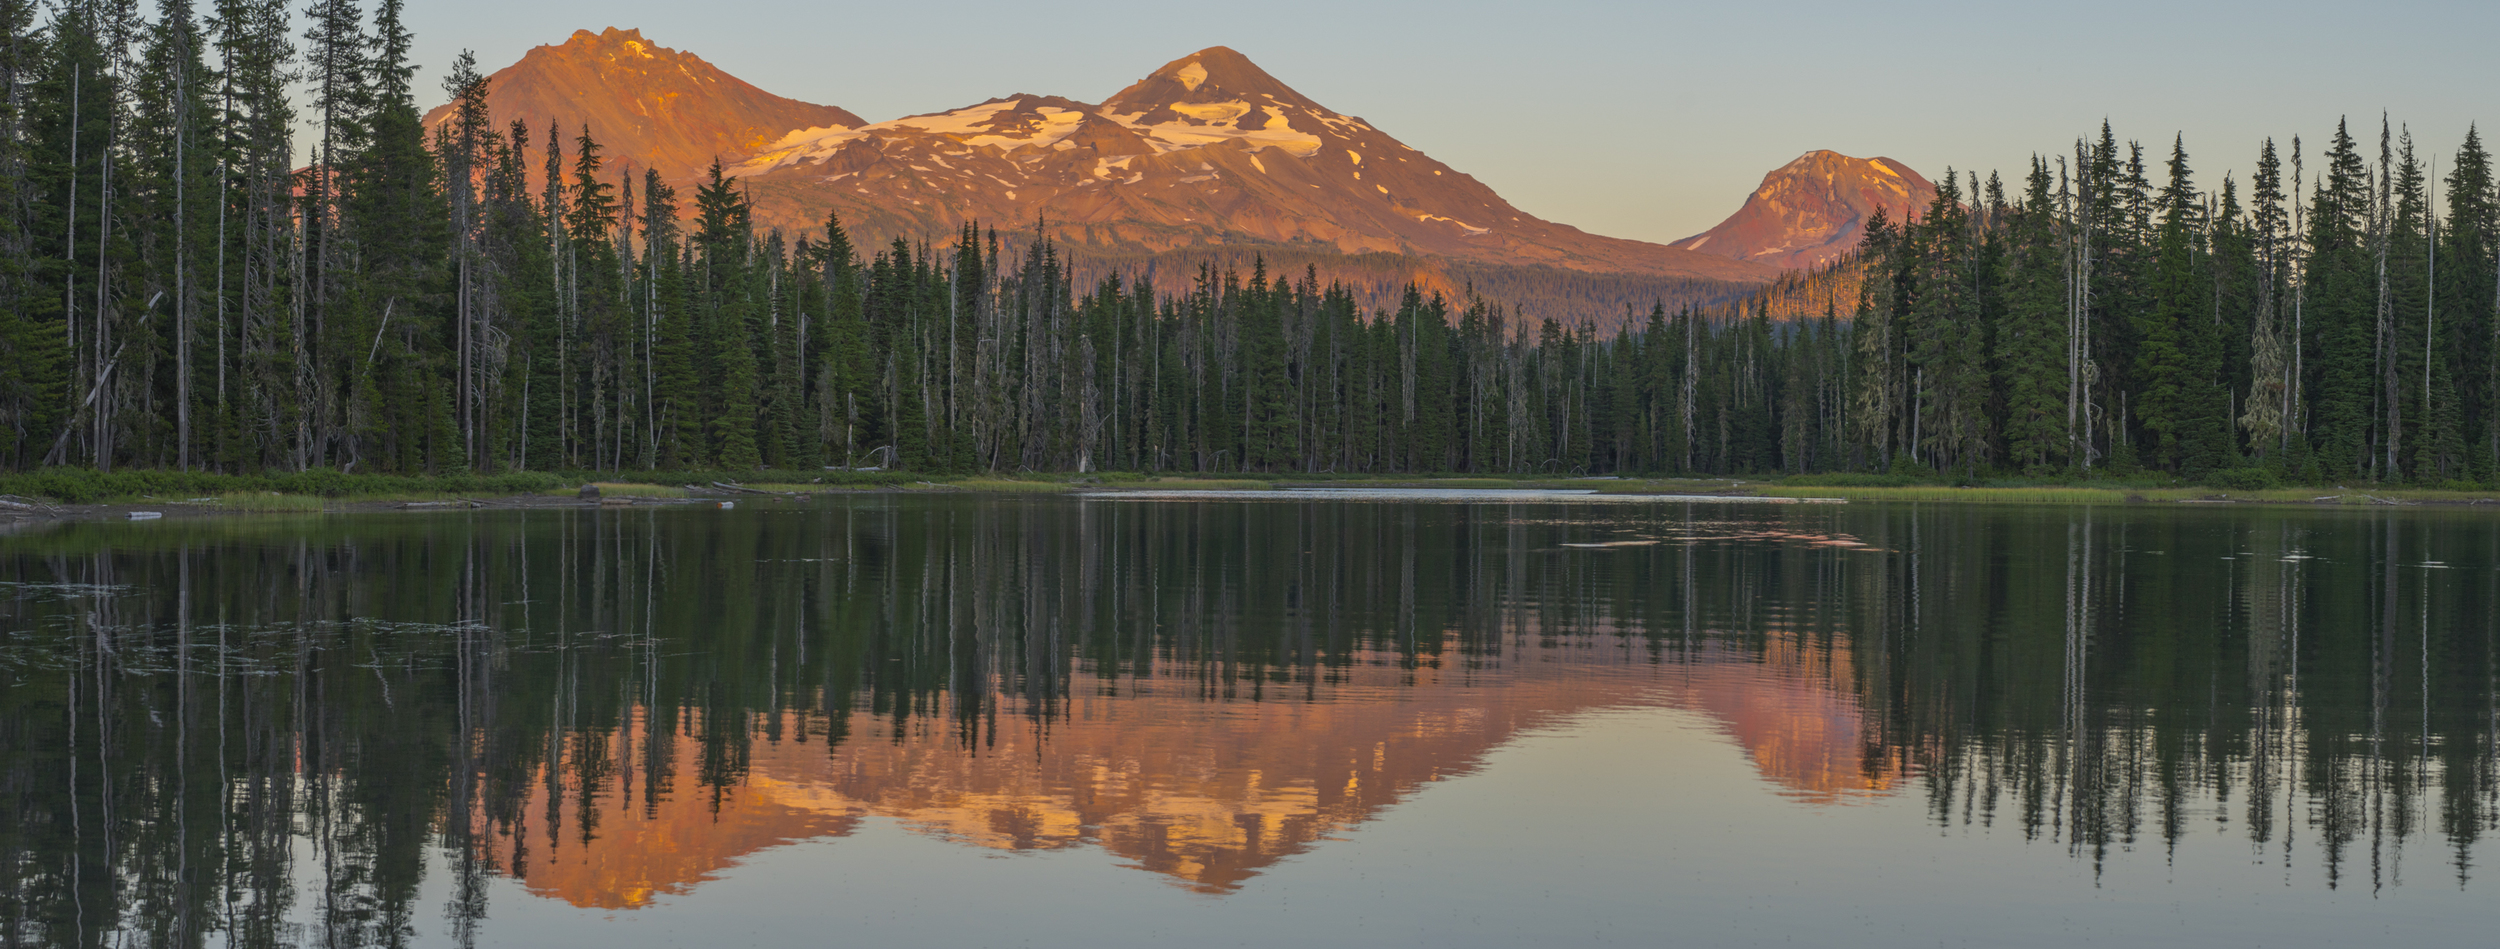 Sunset at Scott Lake with the 3 Sisters Mountains 2015.